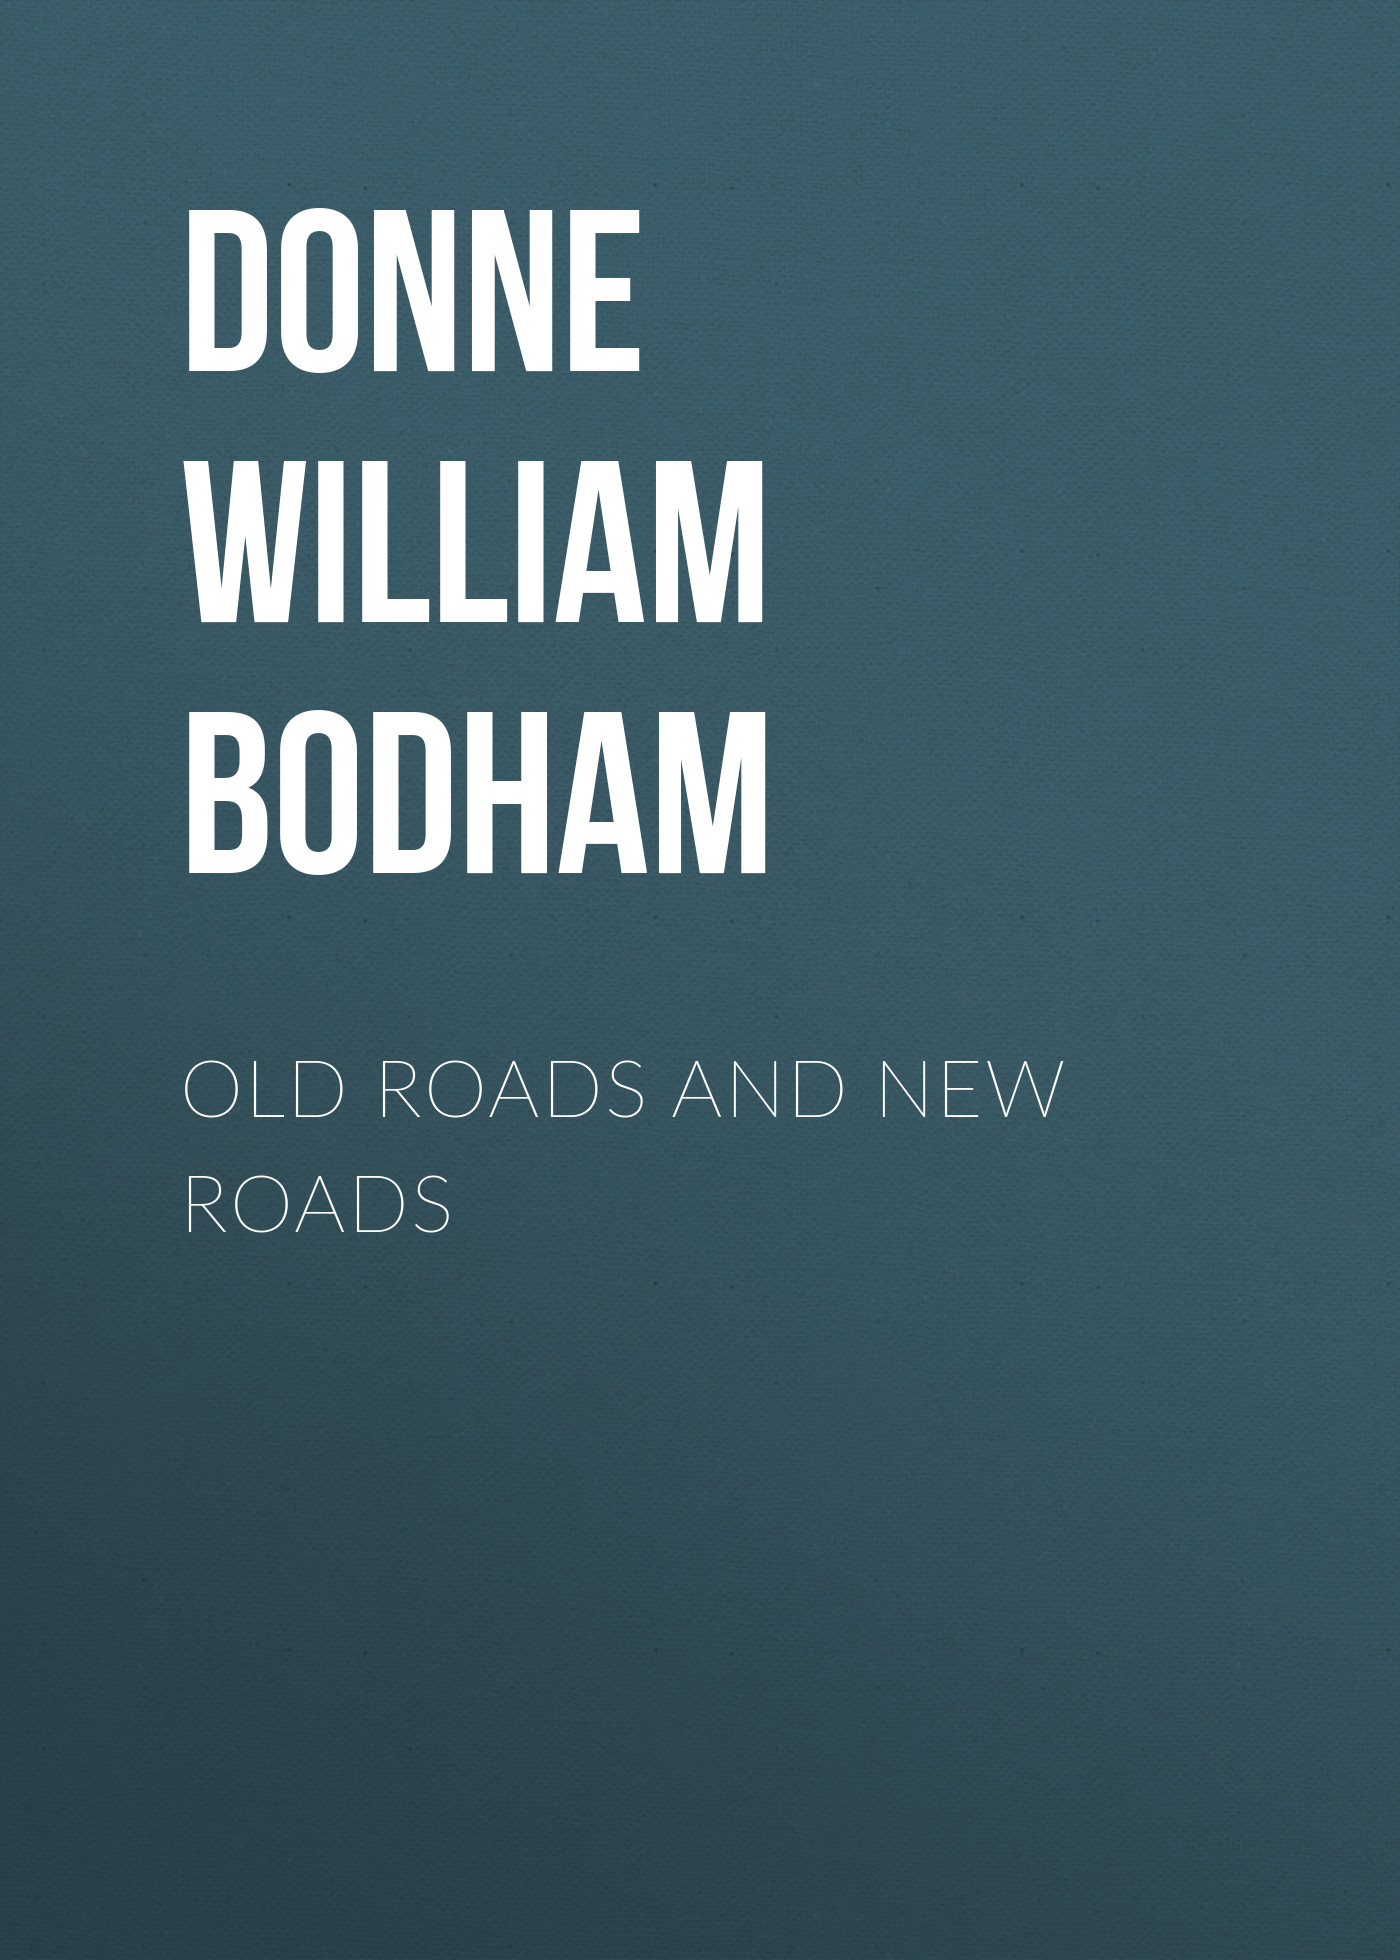 Donne William Bodham Old Roads and New Roads william congreve the old batchelor